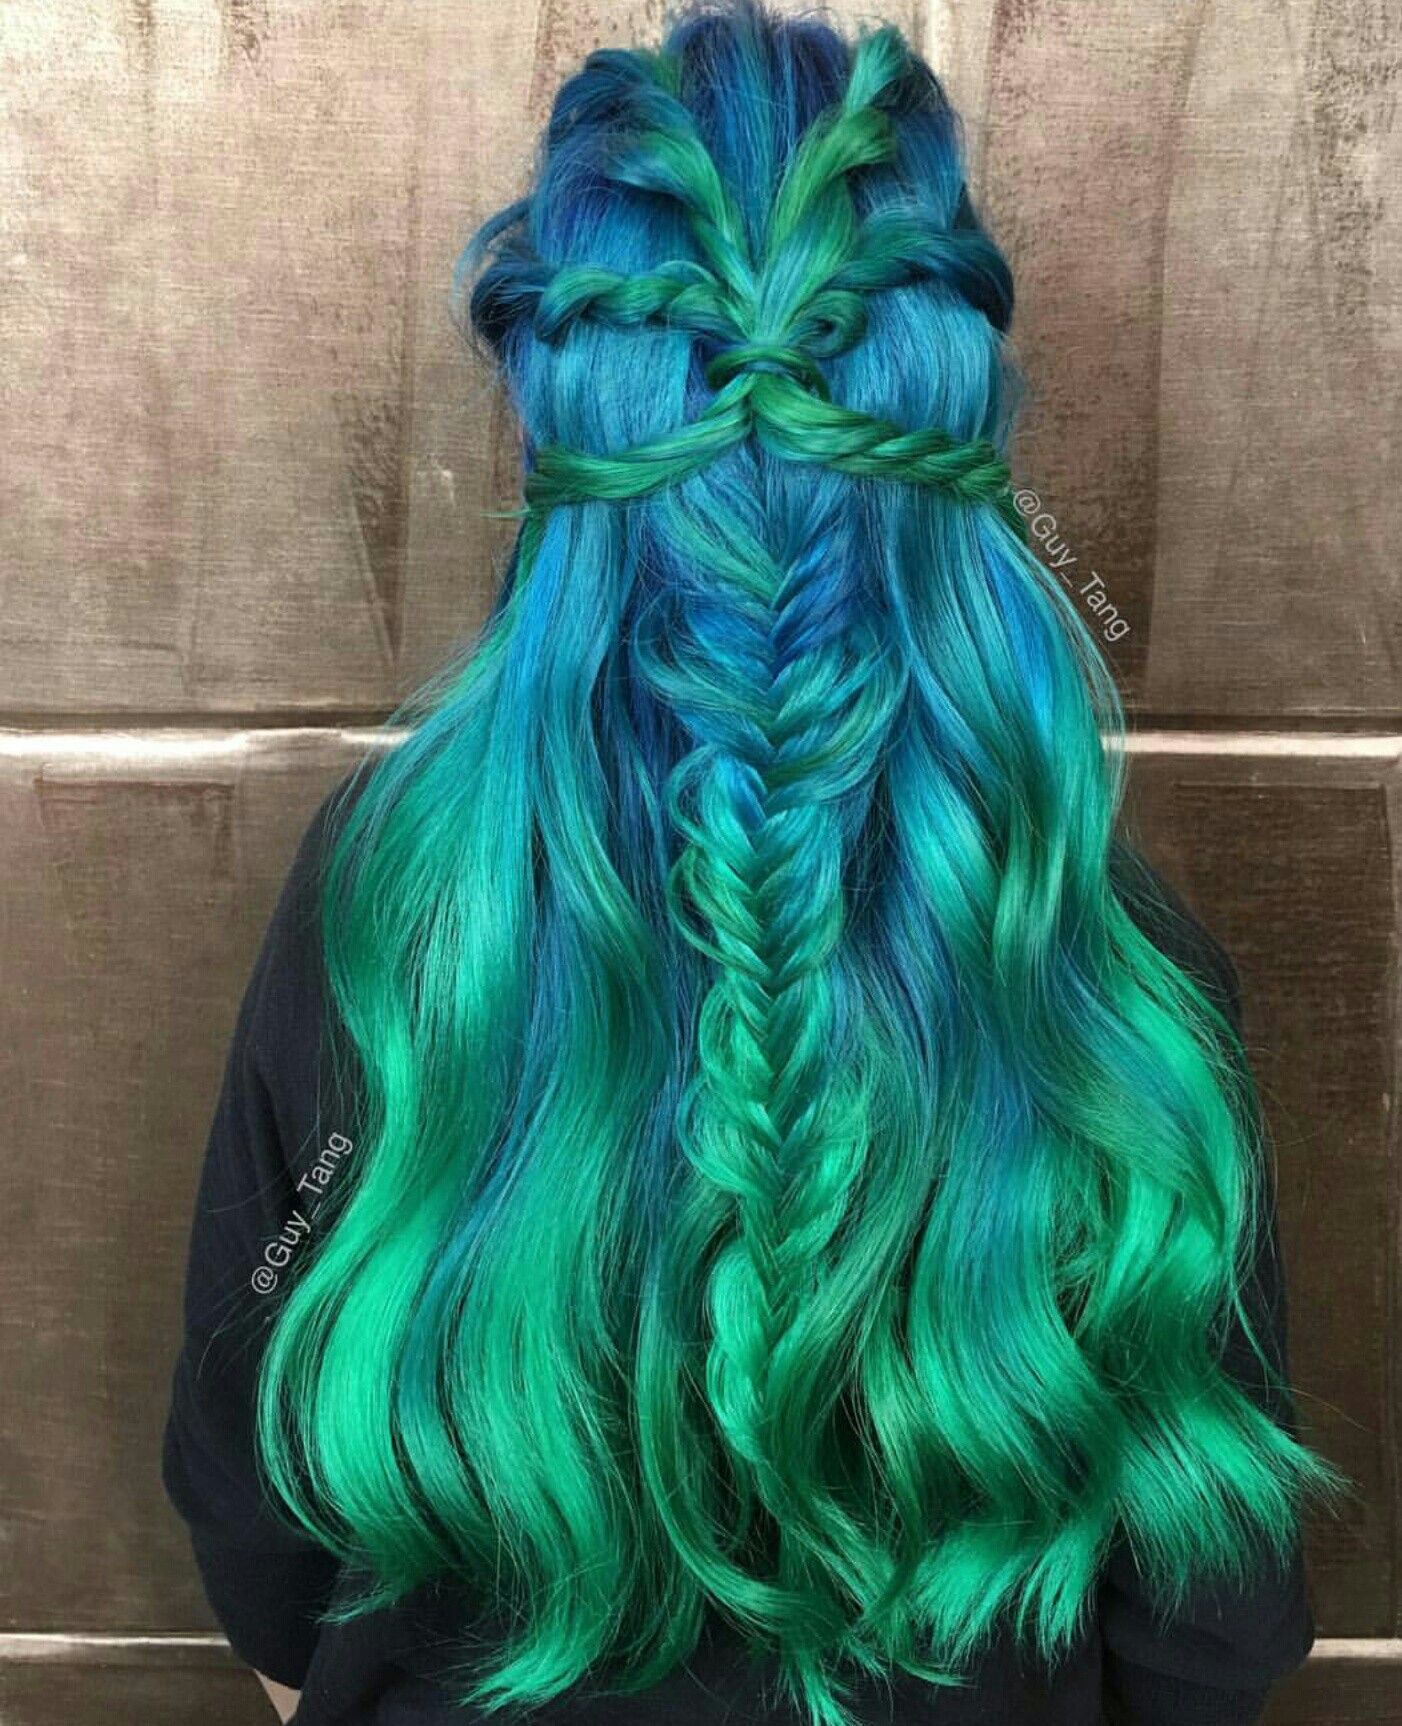 Color braid hair styles turquoise hair color green